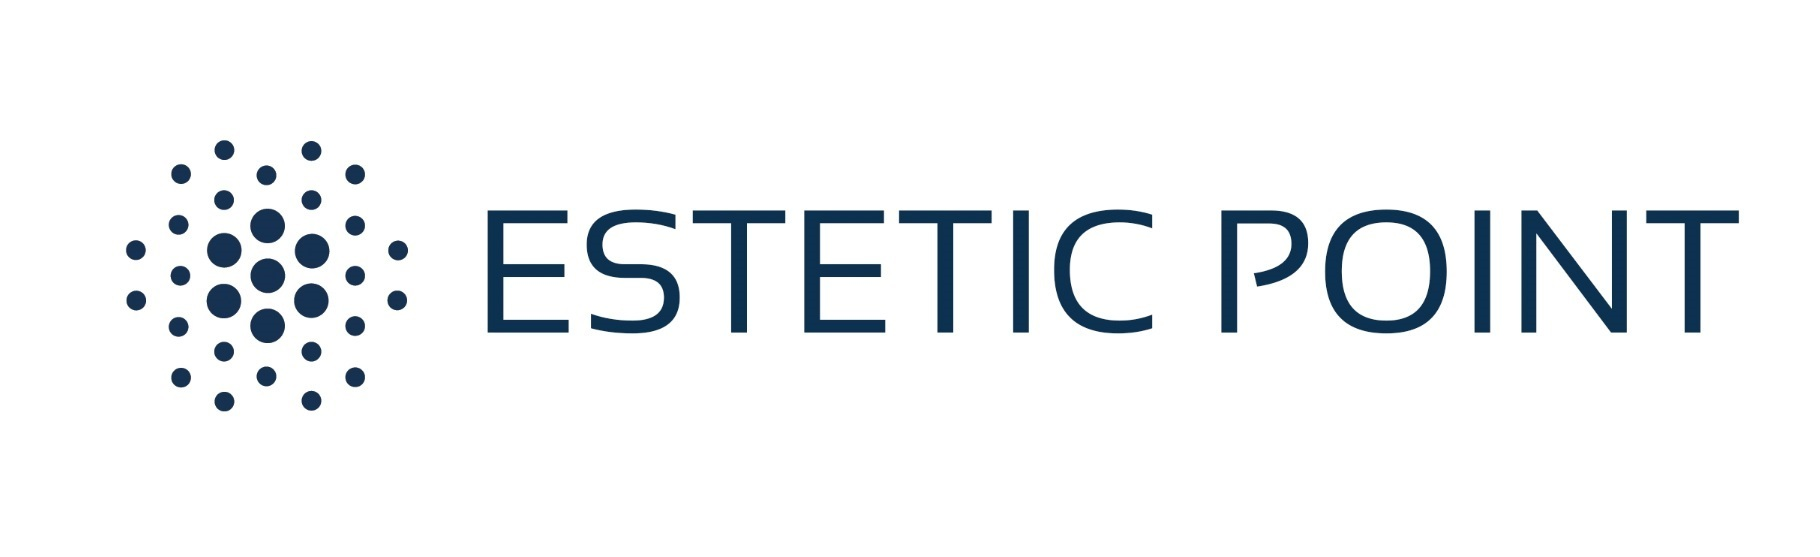 LOgo_Estetic_Point_neu